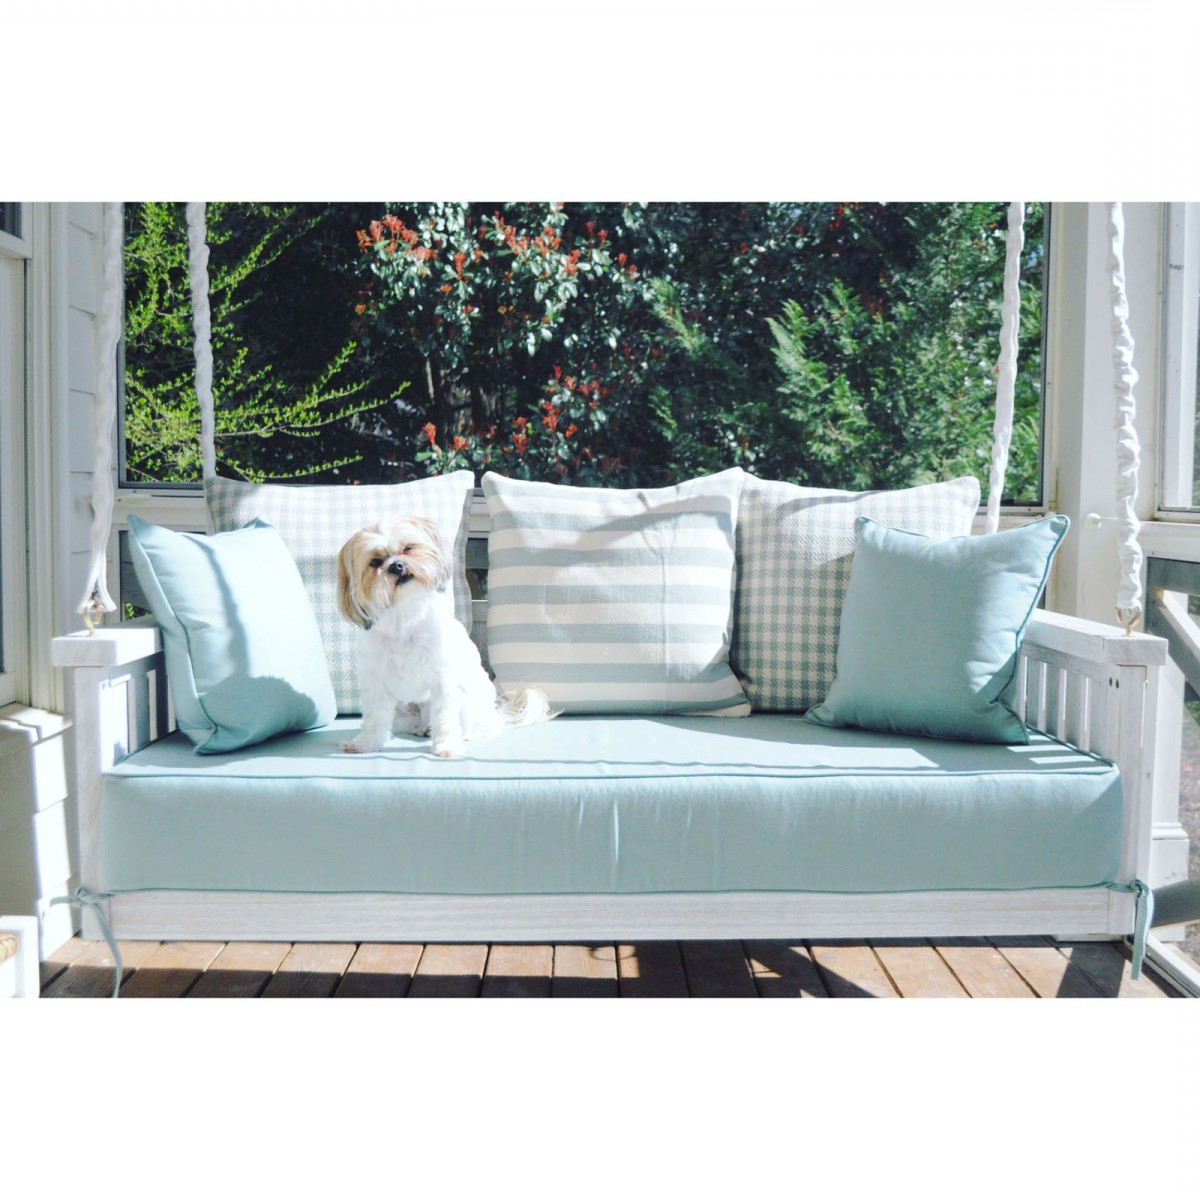 Popular Outdoor Loveseat Gliders With Cushion Within Custom Outdoor Glider / Porch Swing Cushions – Outdoor (View 29 of 30)